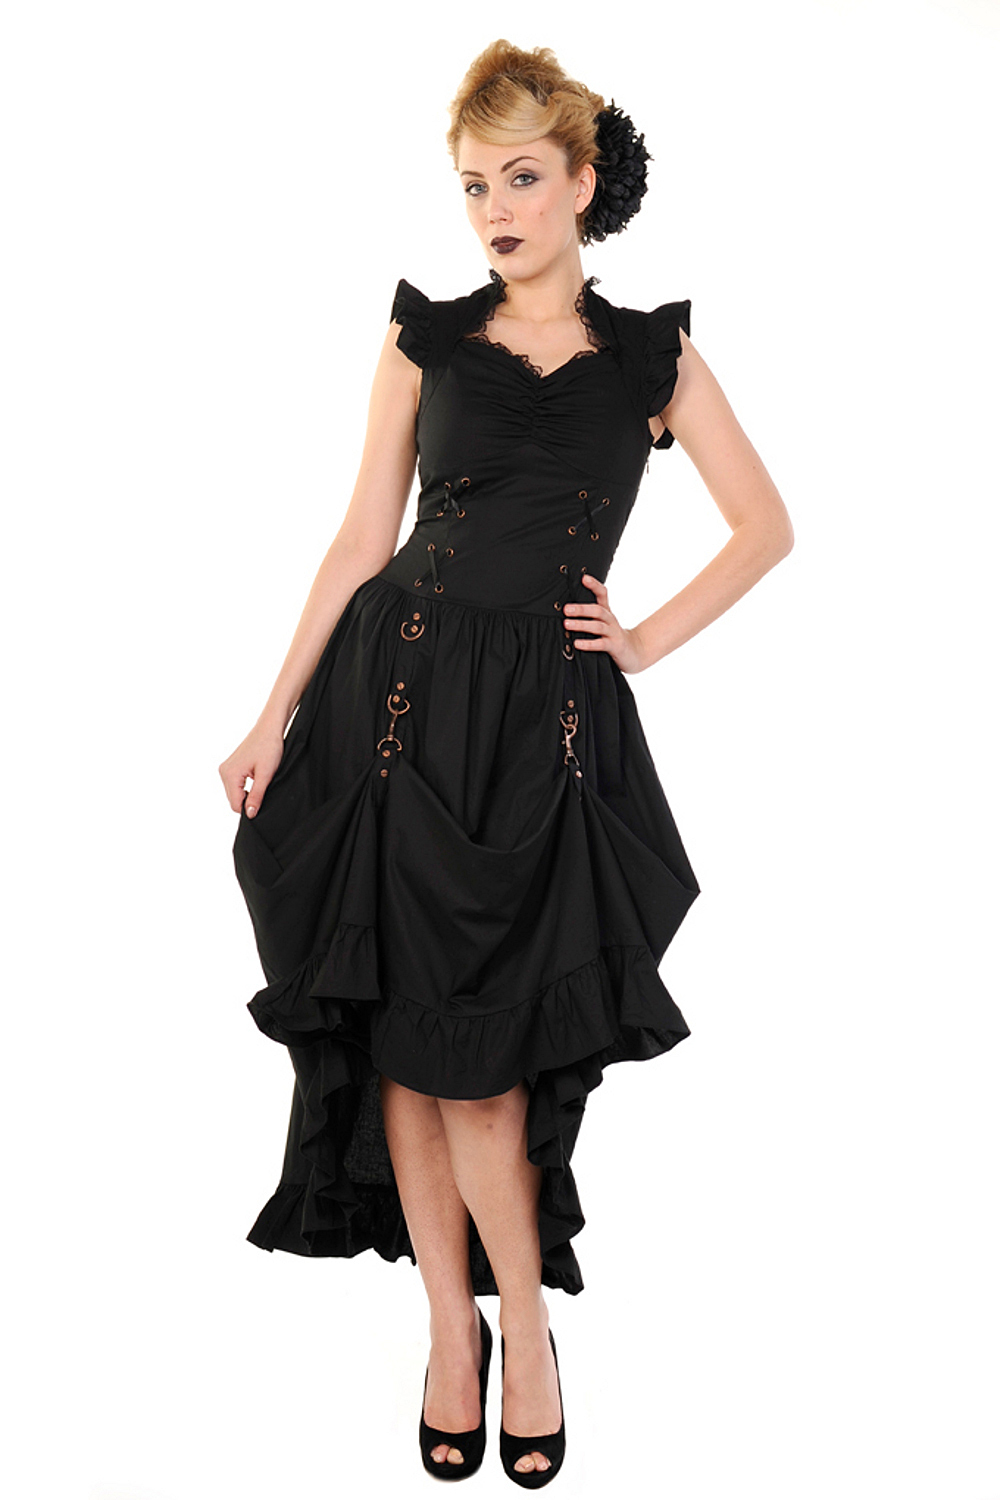 Alternative Prom Dresses Available in Our Kent Based Shop - Call us on 01304 213 138